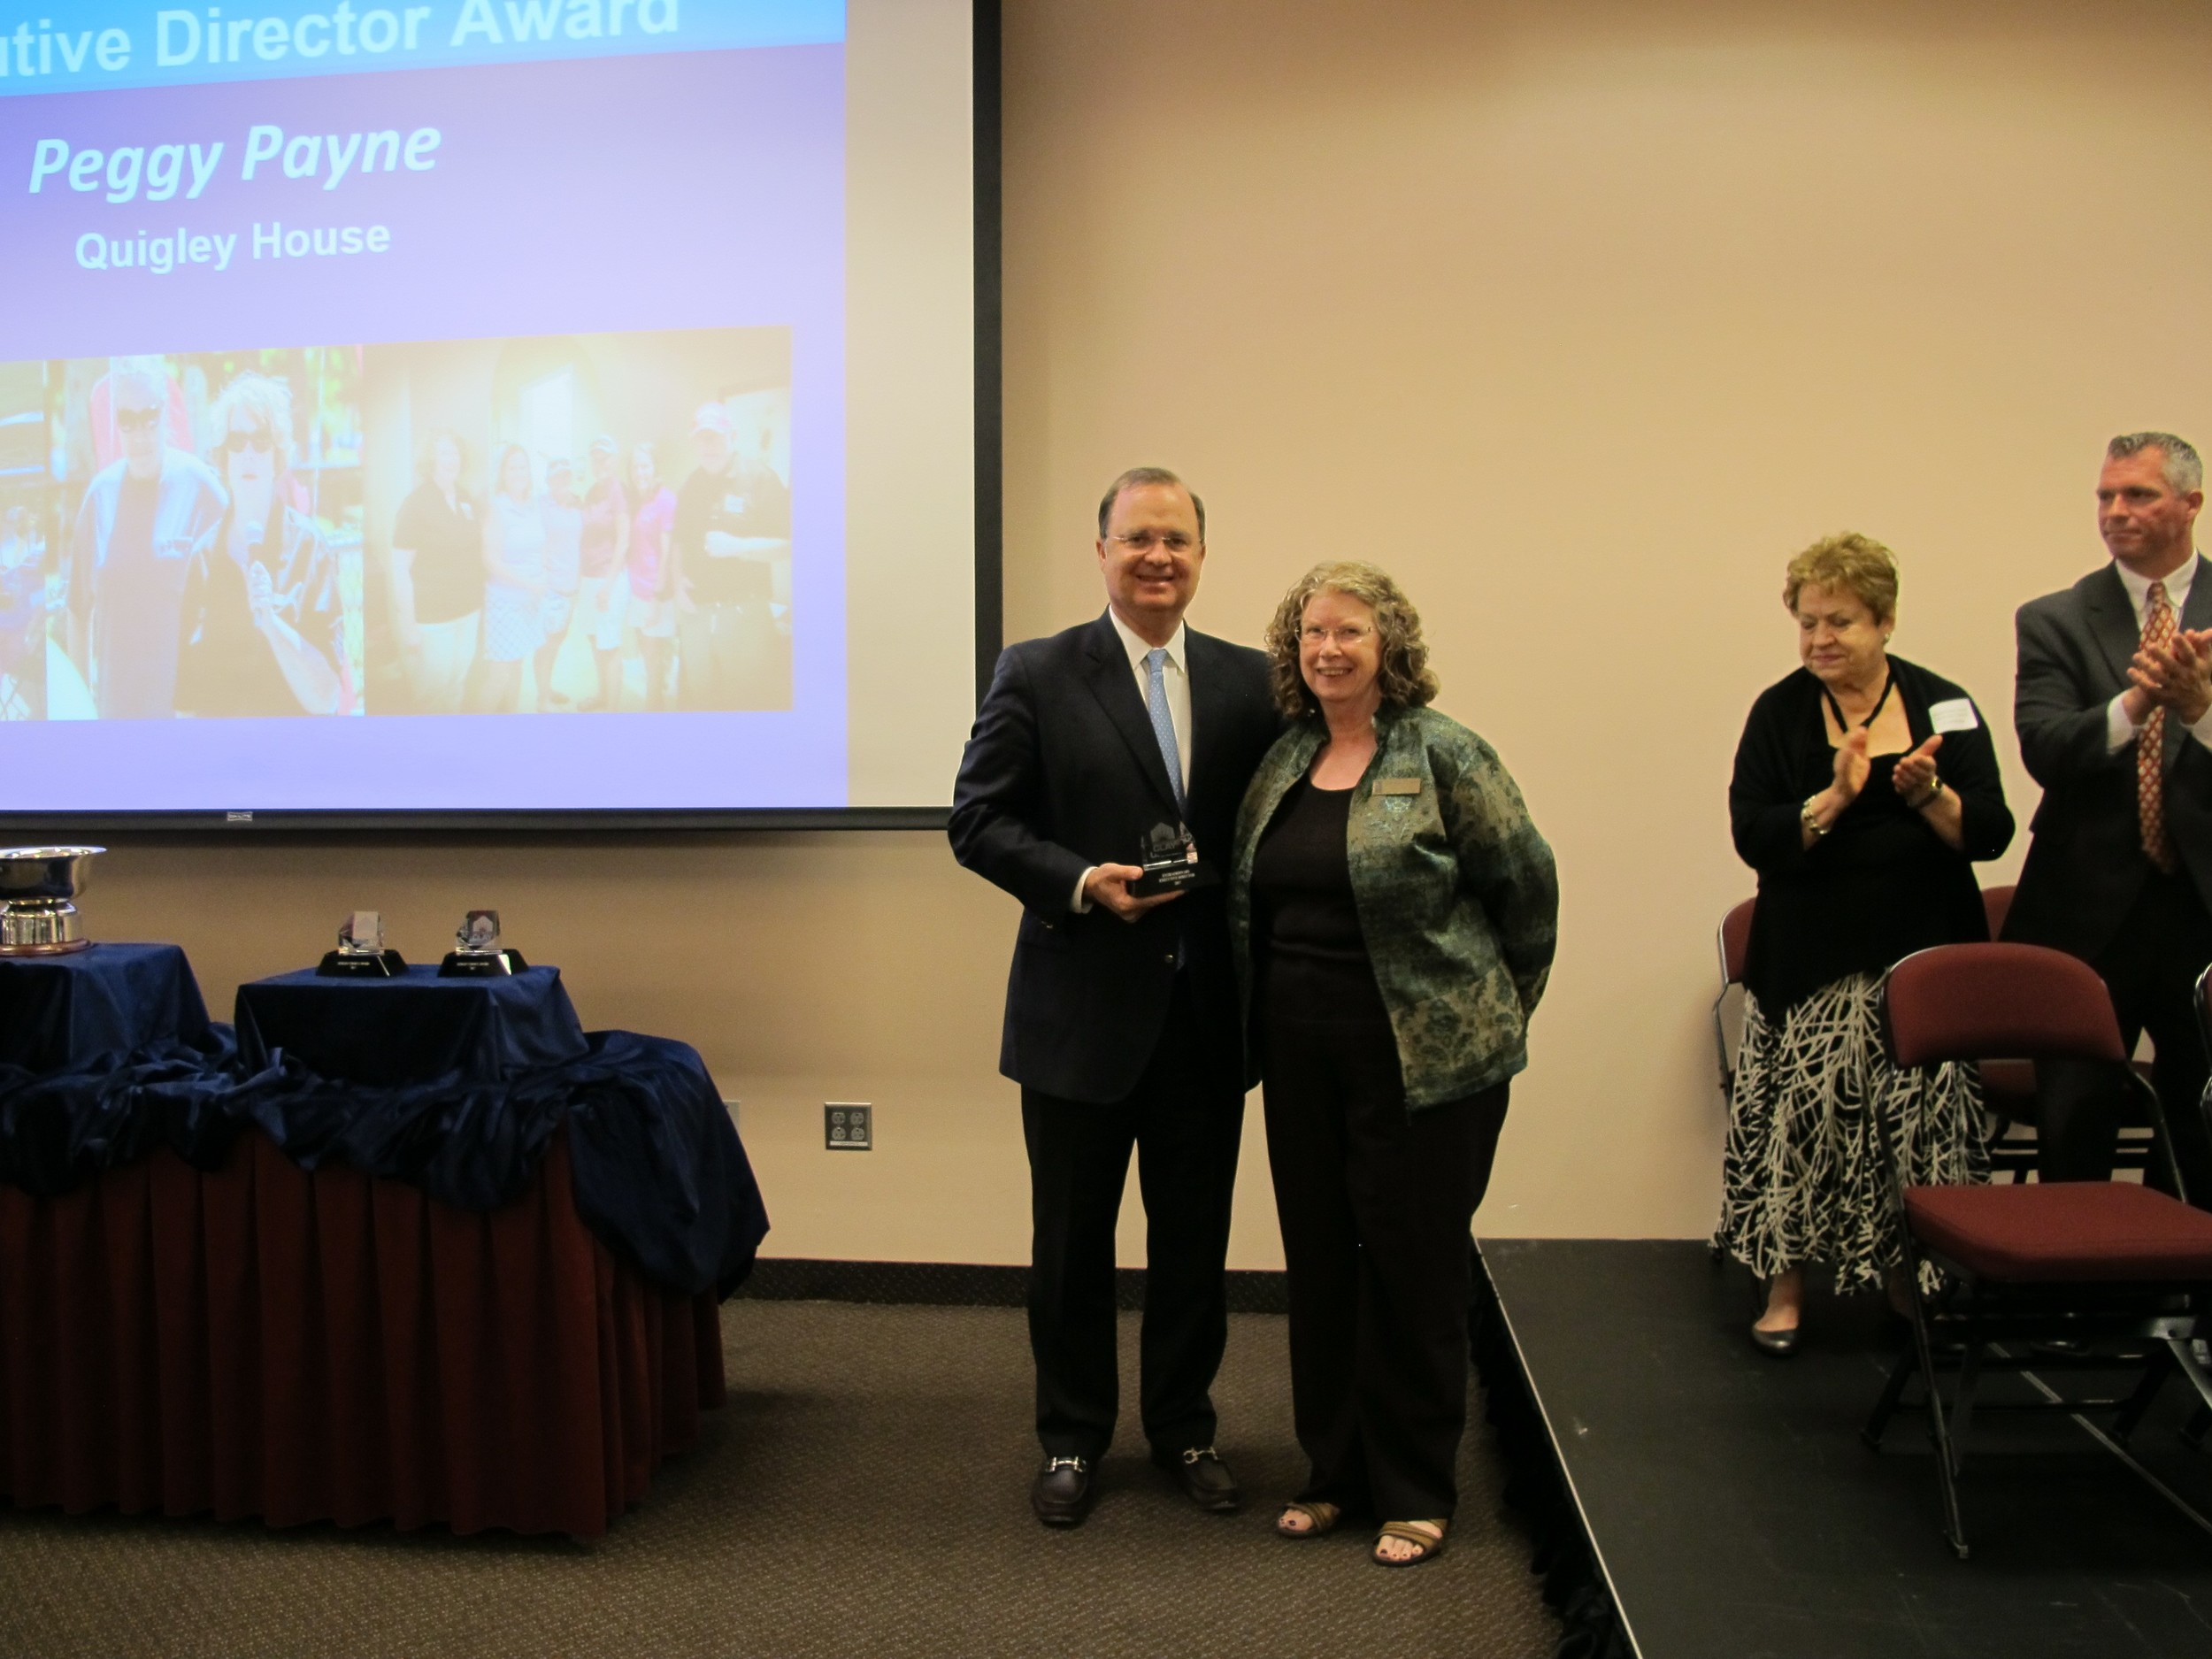 Peggy Payne of Quigley House Receives Extraordinary Executive Director Award.